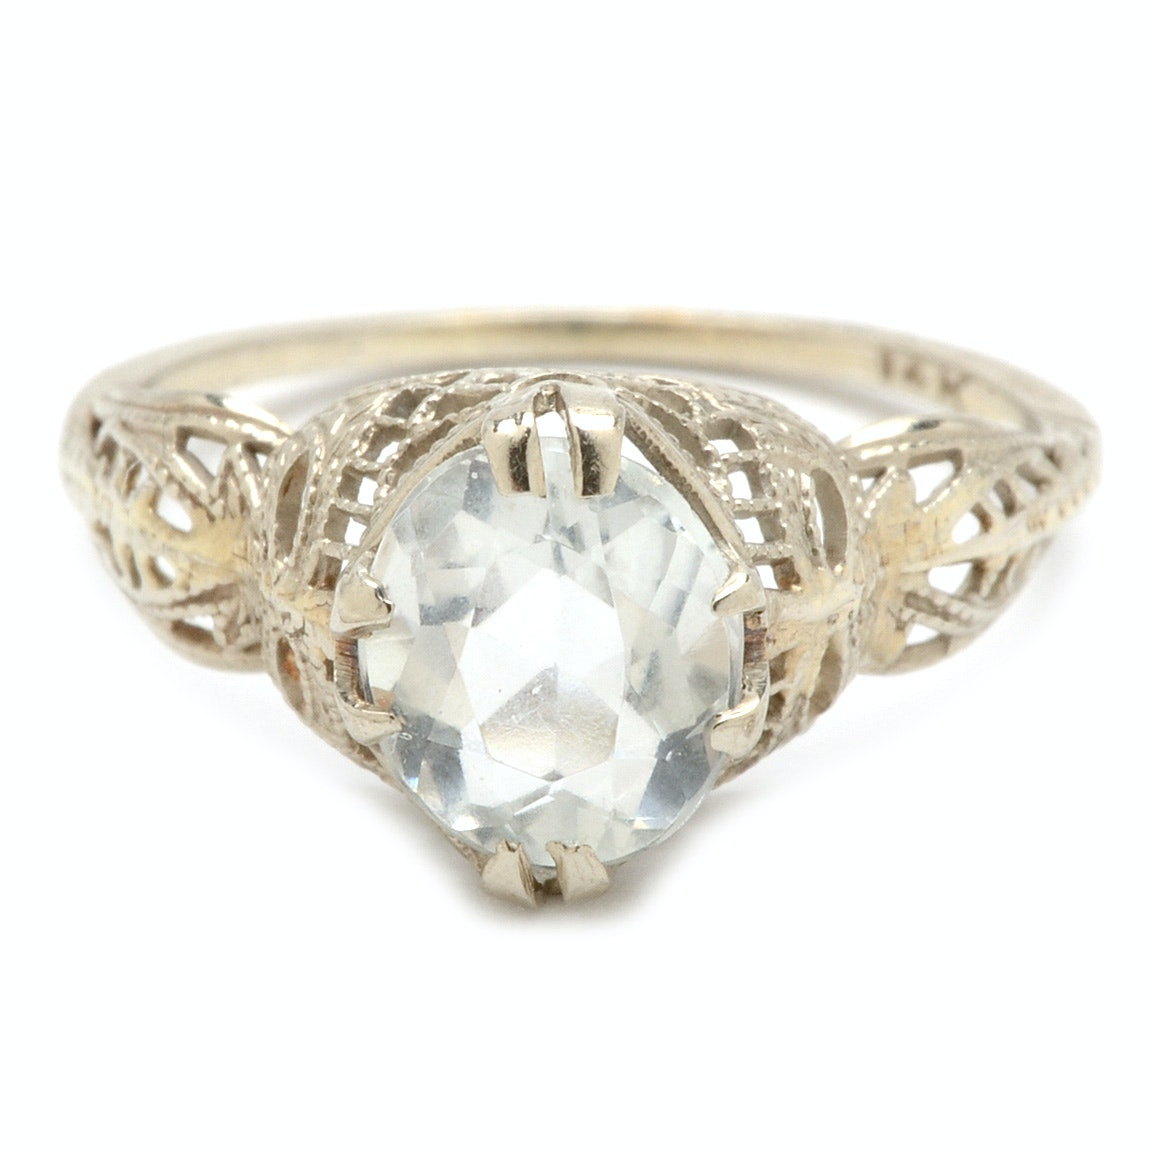 Vintage 14K White Gold 1.05 Carat Aquamarine Filigree Ring